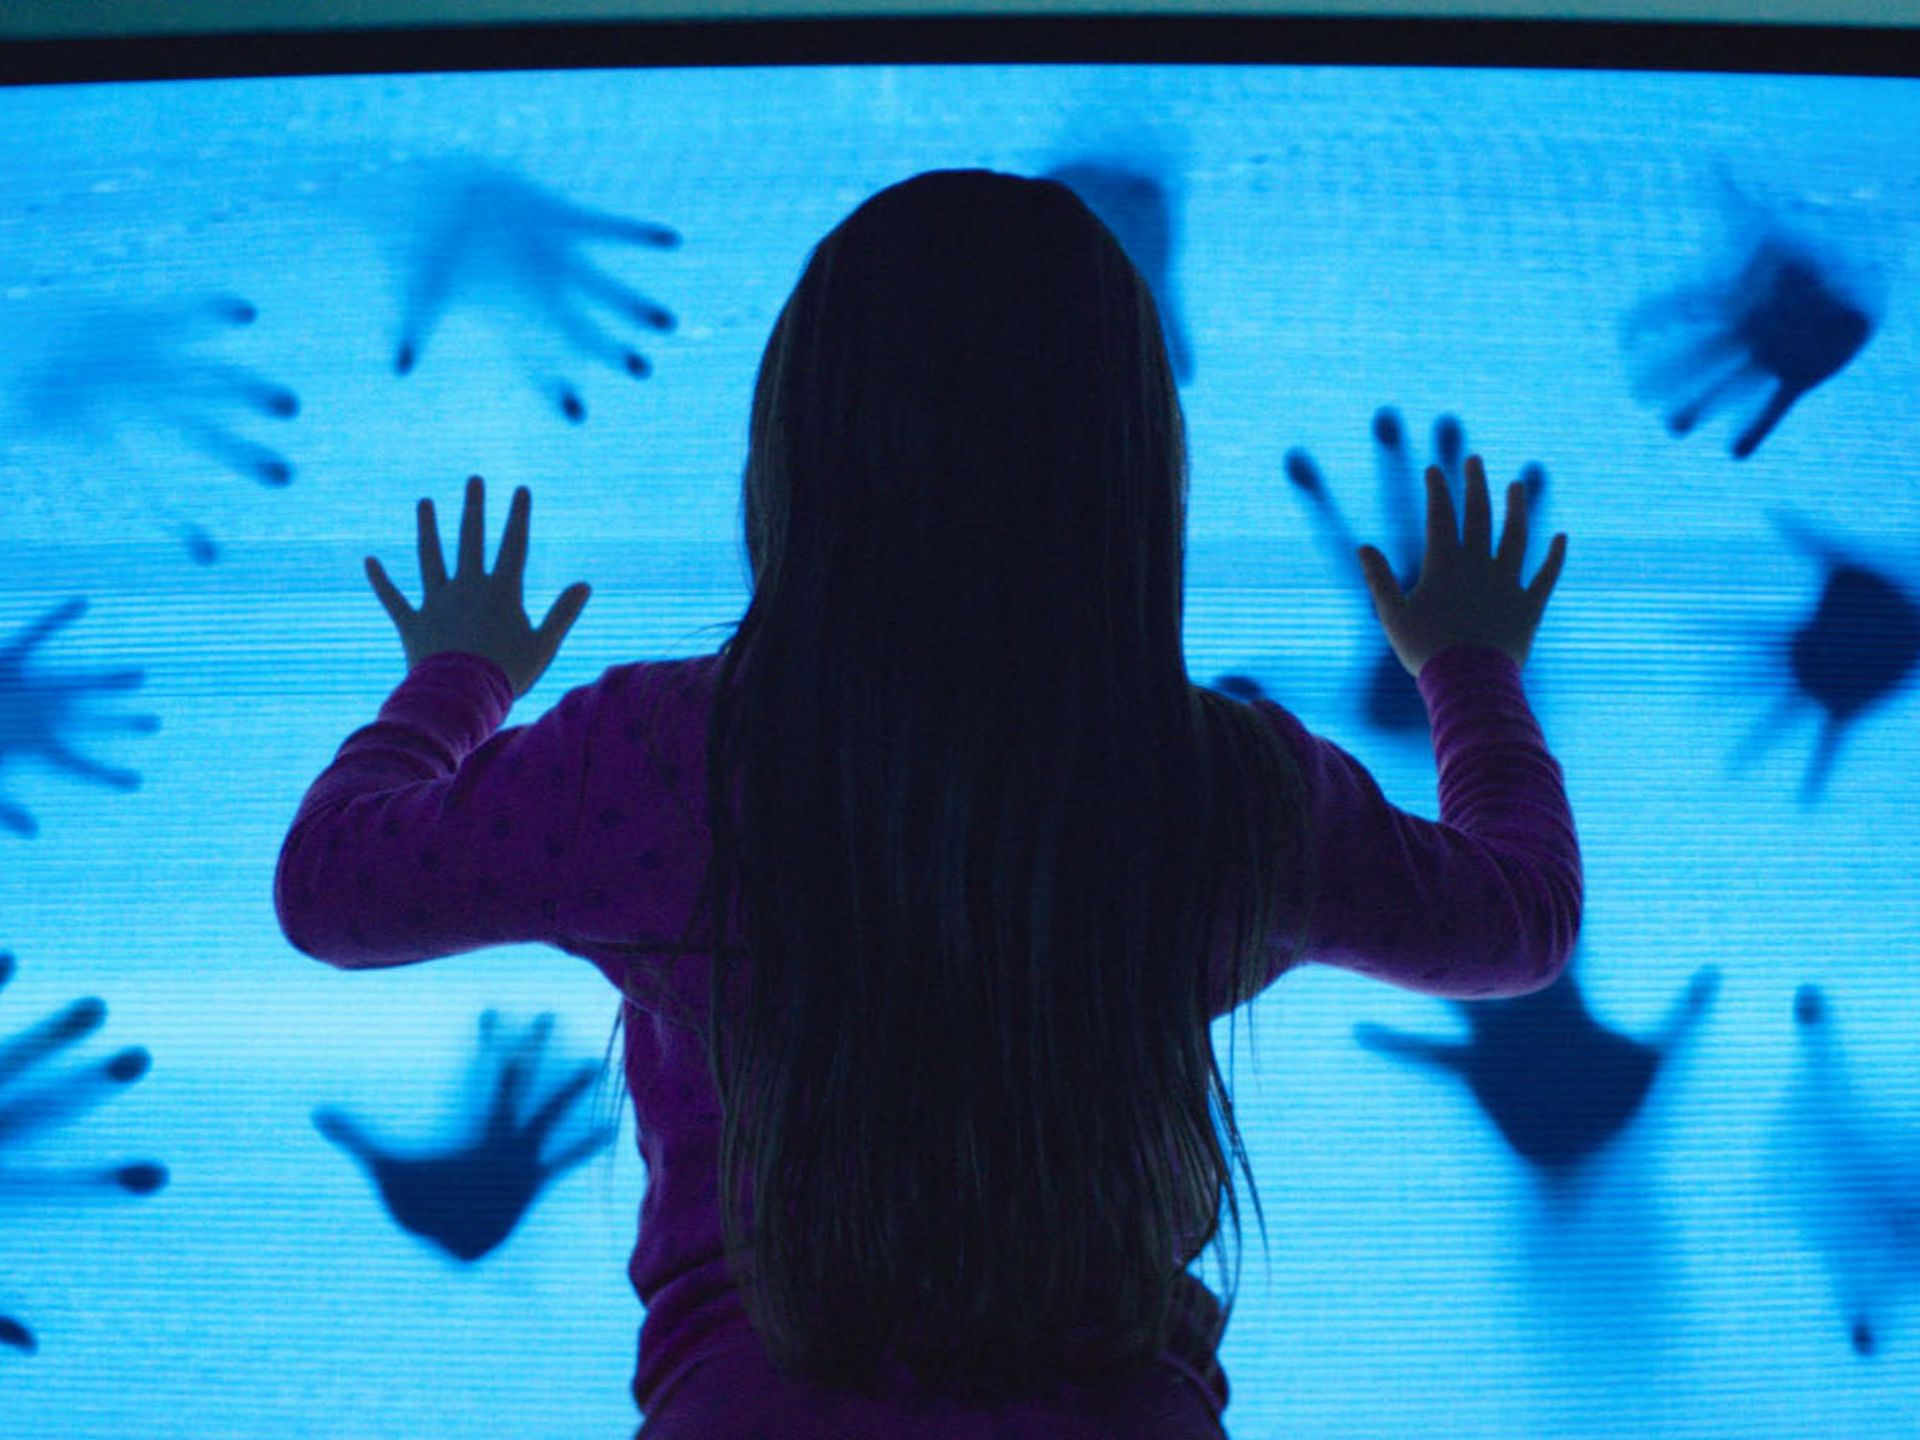 poltergeist spirit tv hands for little girl 2015 imagews